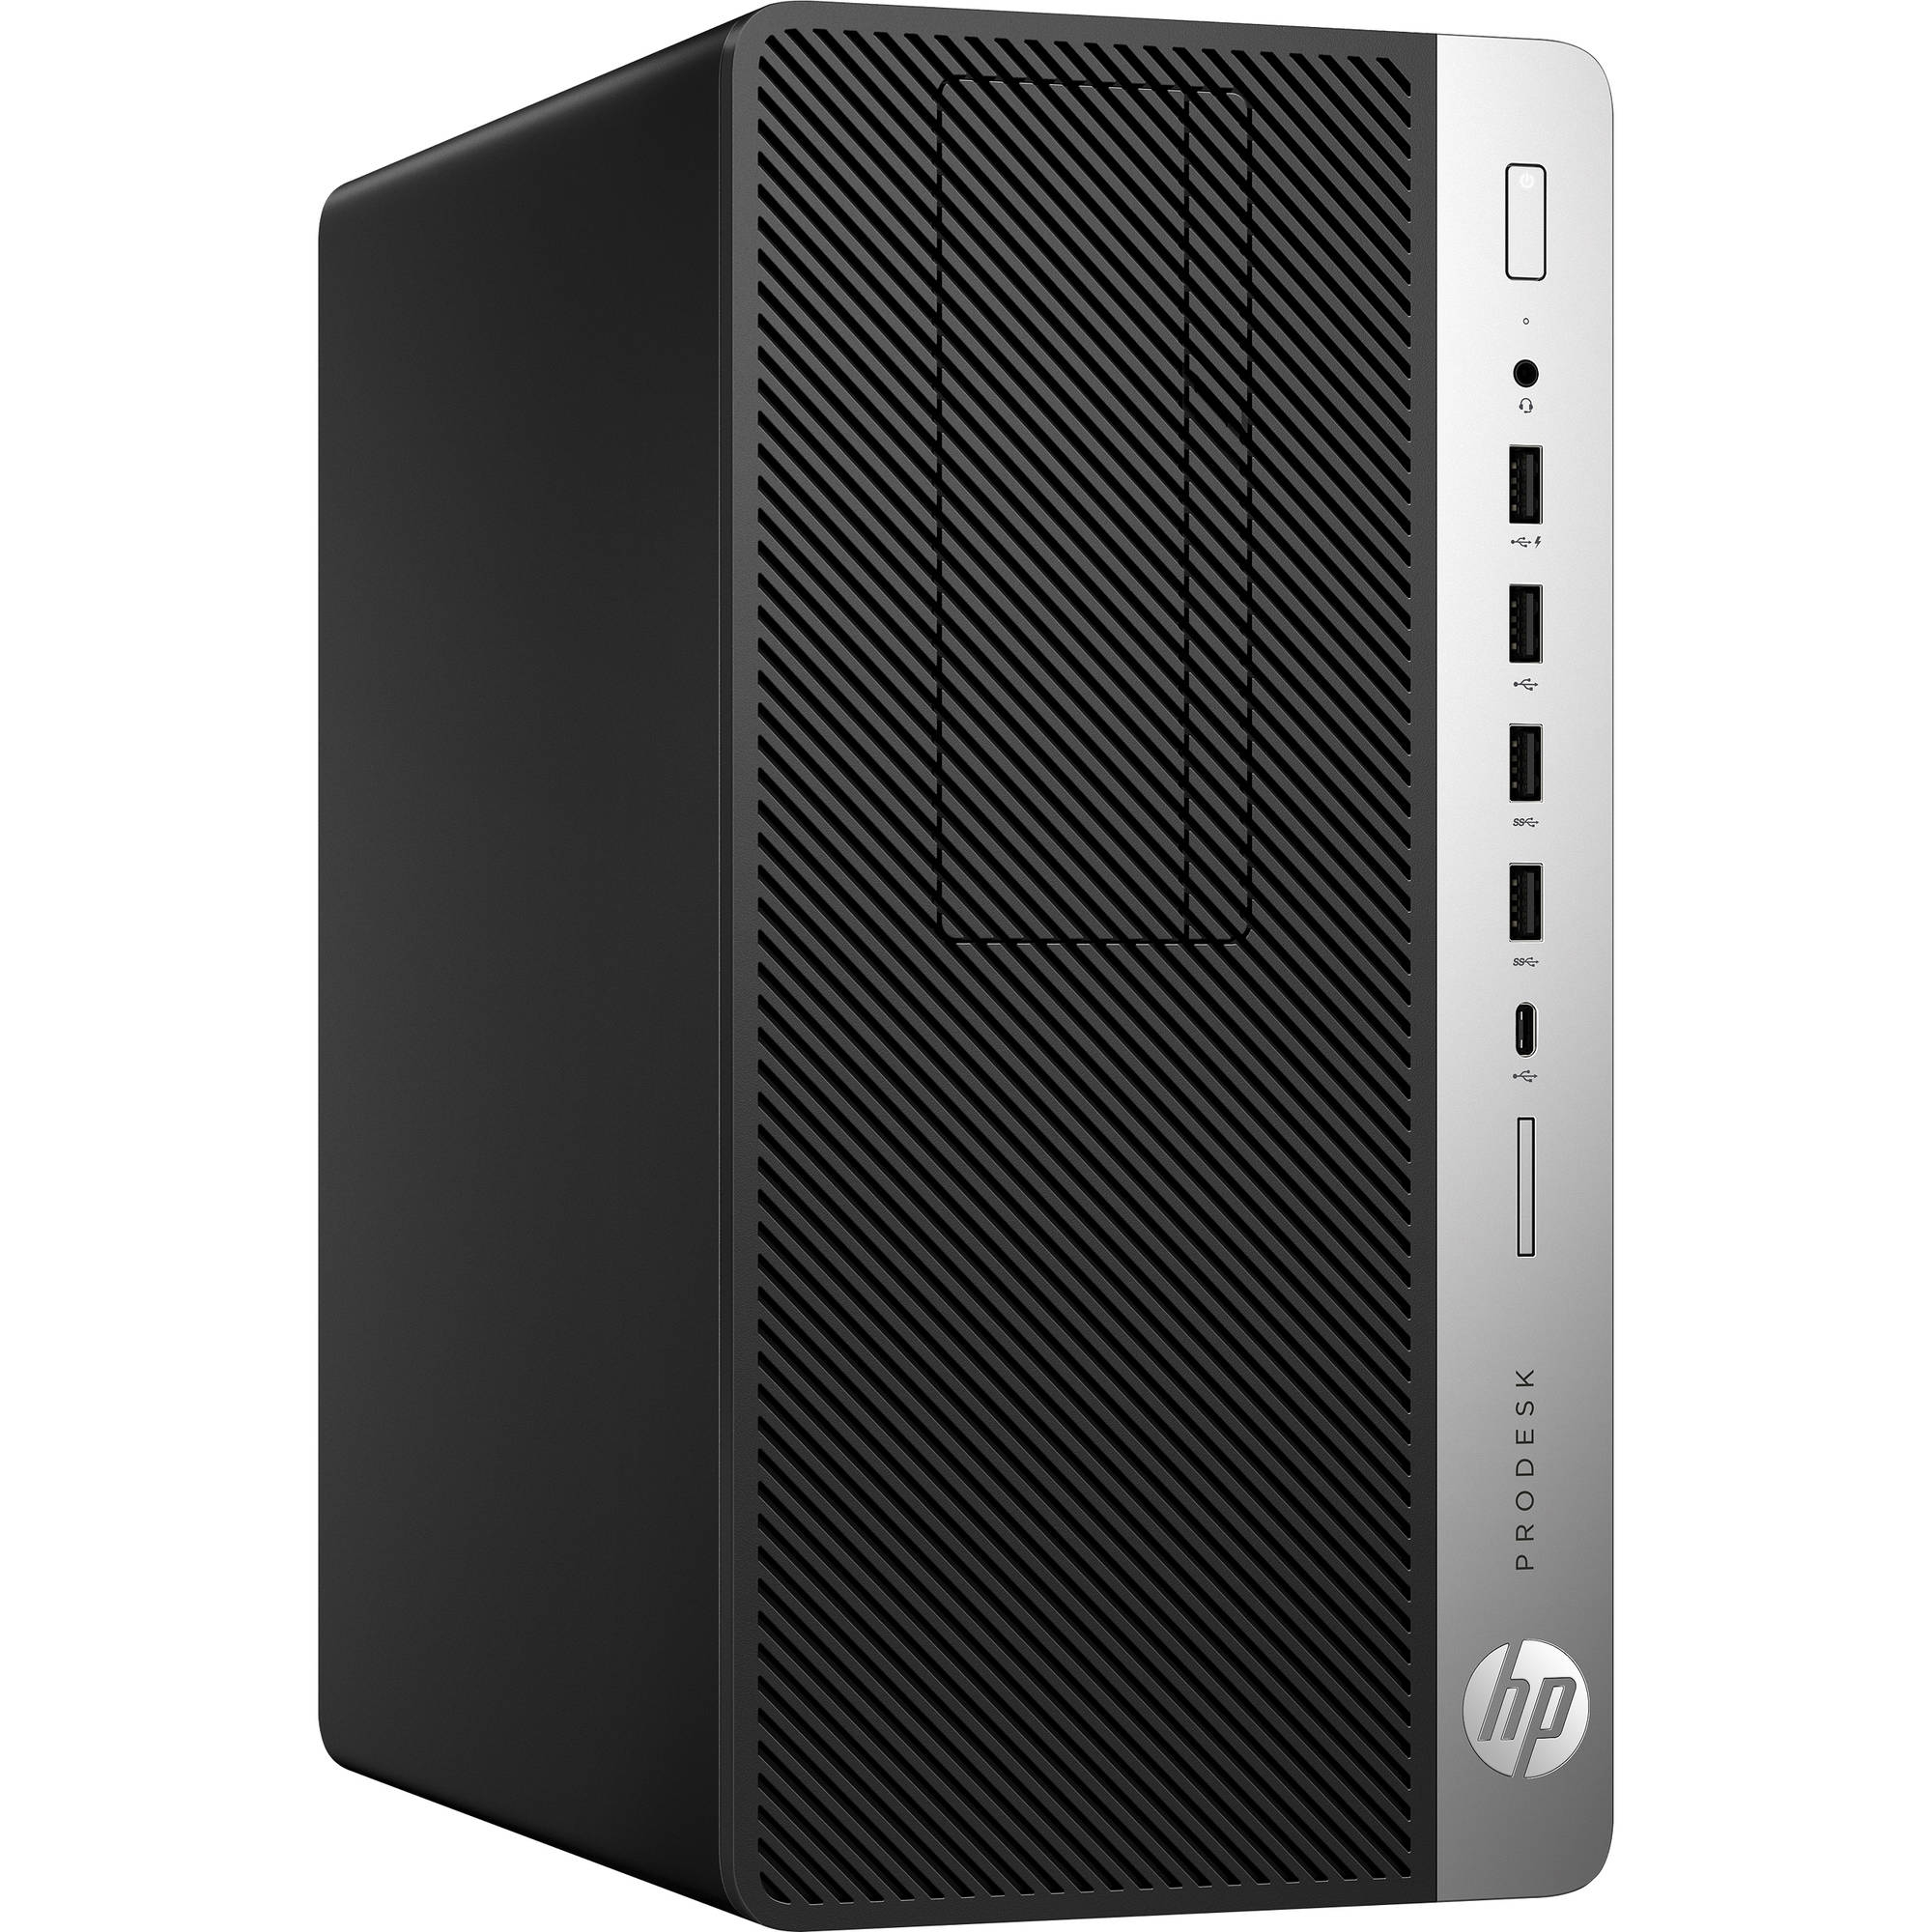 HP ProDesk 600 G3 Mini Tour